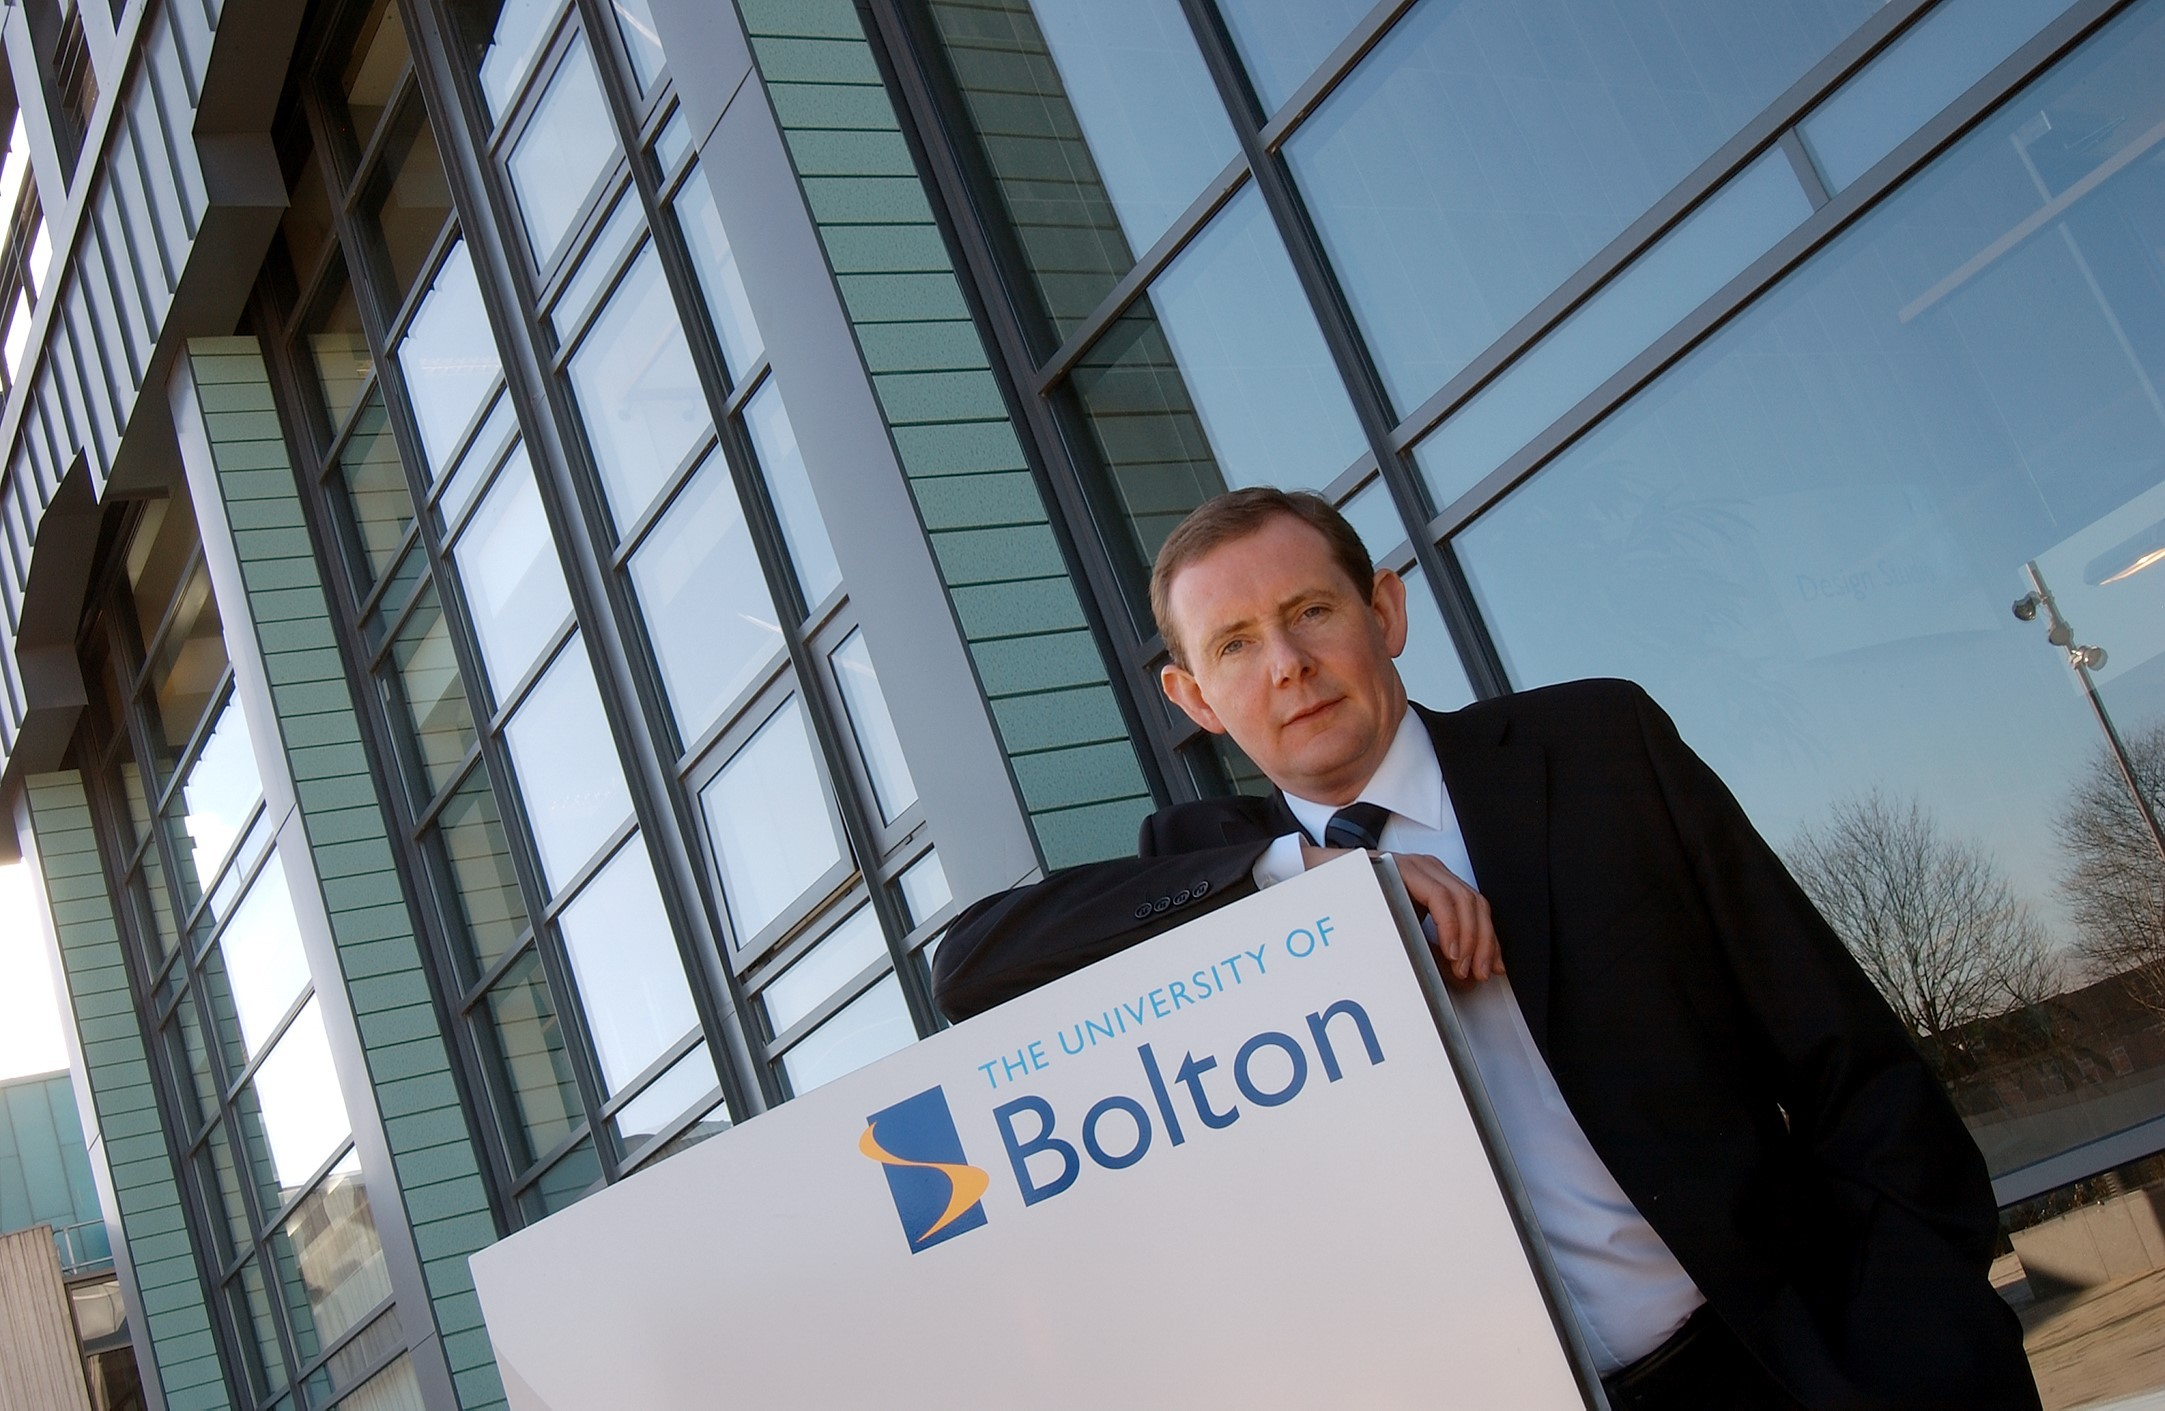 Professor George Holmes, vice chancellor of The University of Bolton